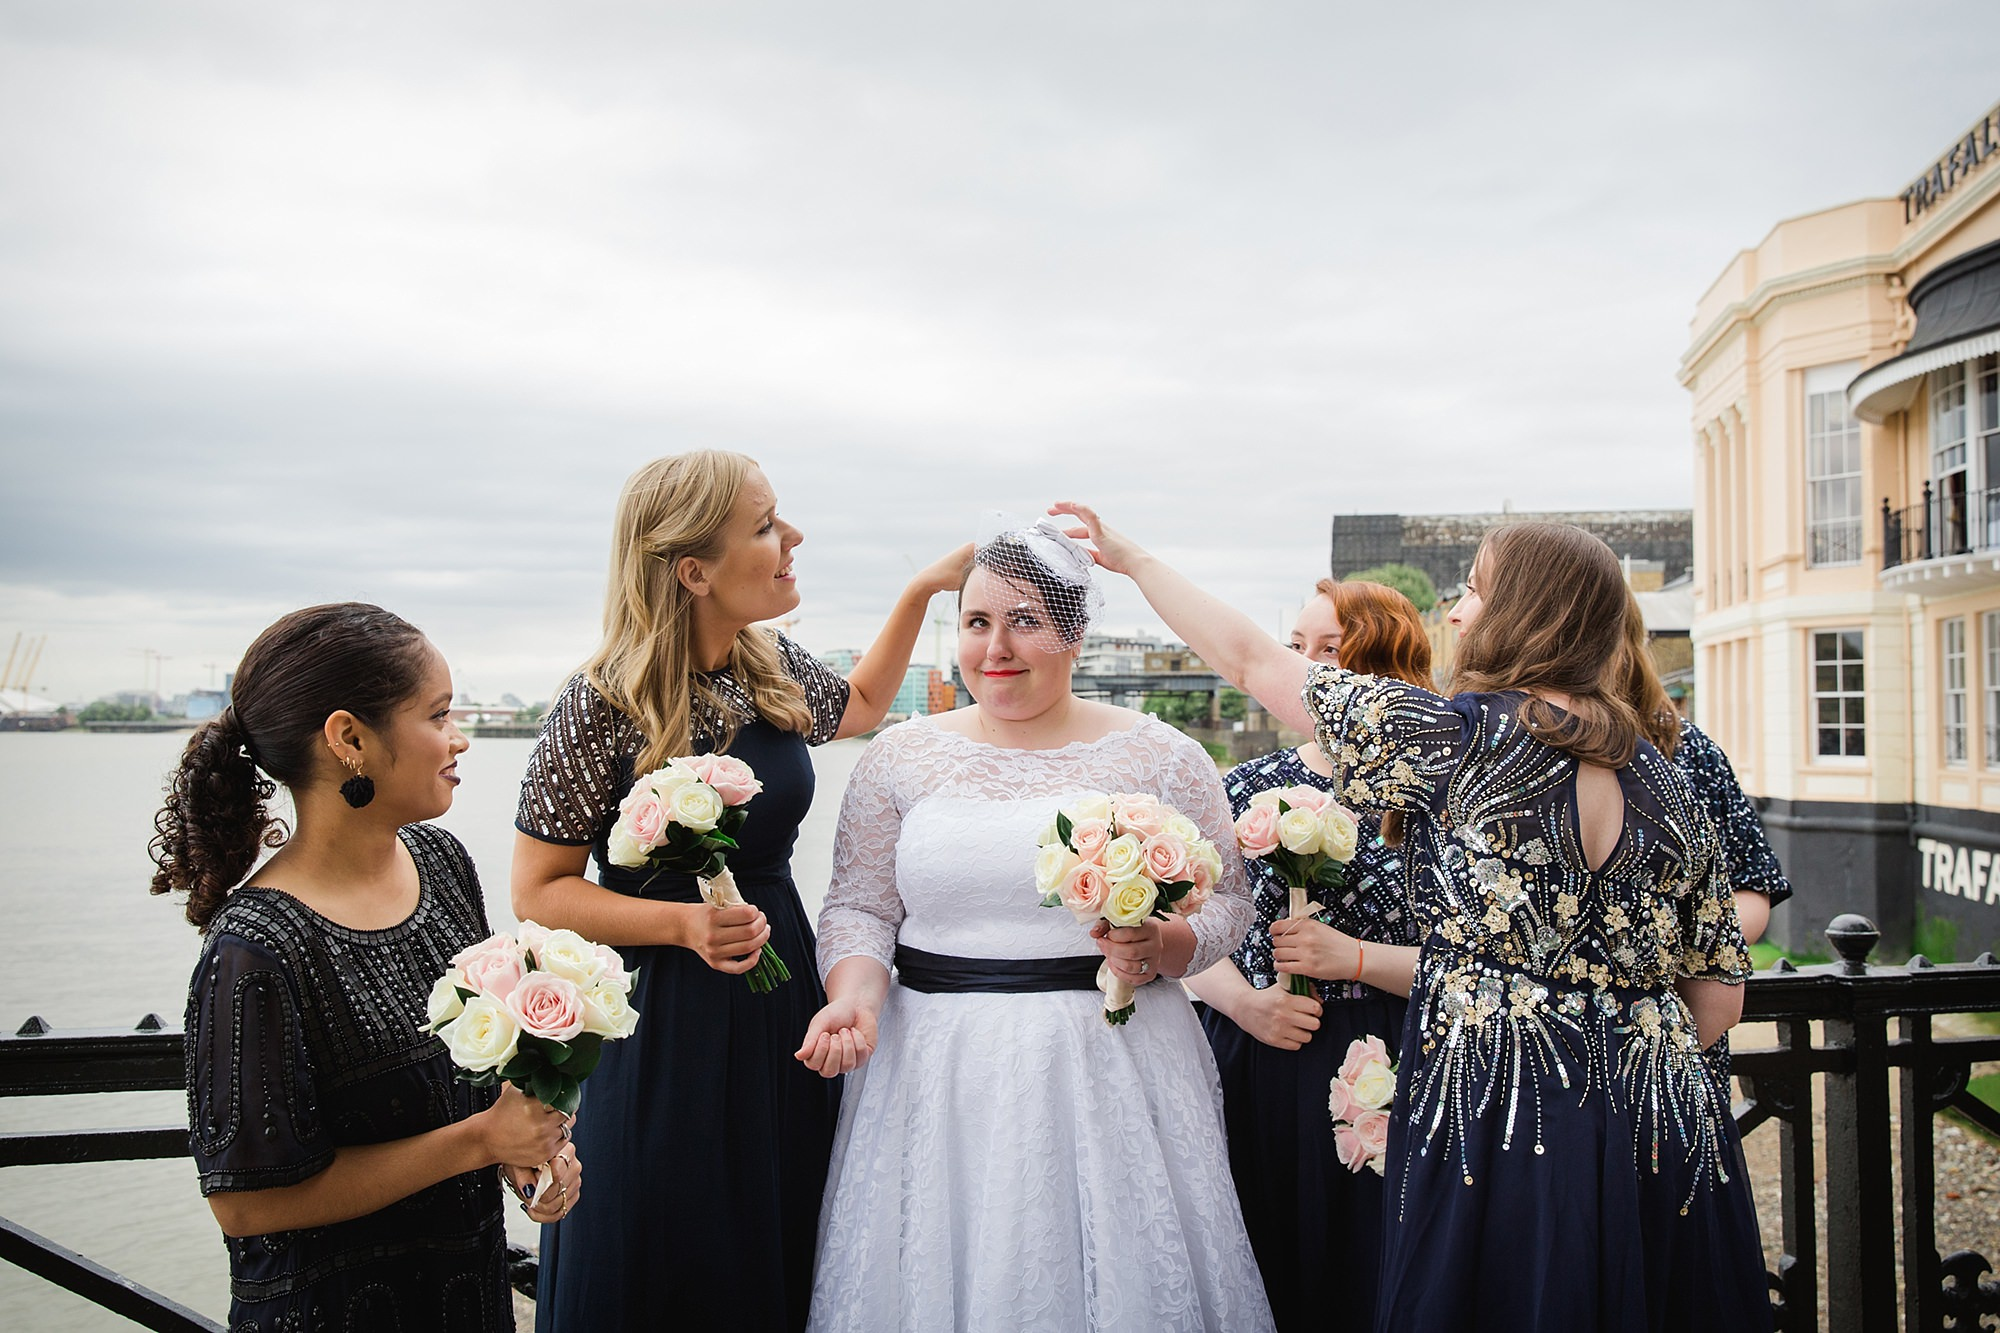 Trafalgar Tavern wedding bridesmaids get confetti out of bride's hair